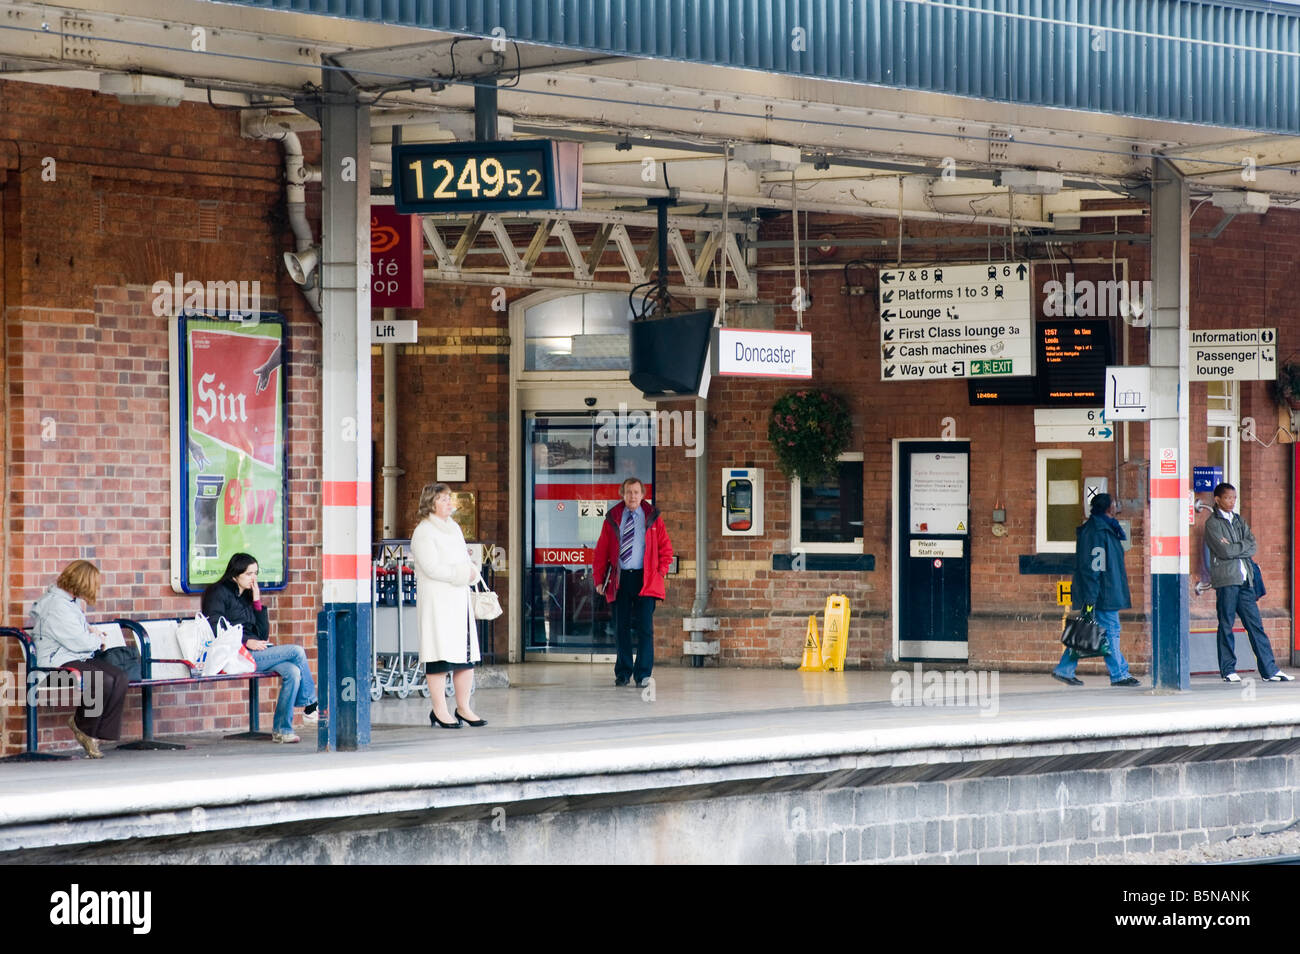 Passengers waiting for trains at Doncaster railway station, 'South Yorkshire, England, 'Great Britain' - Stock Image